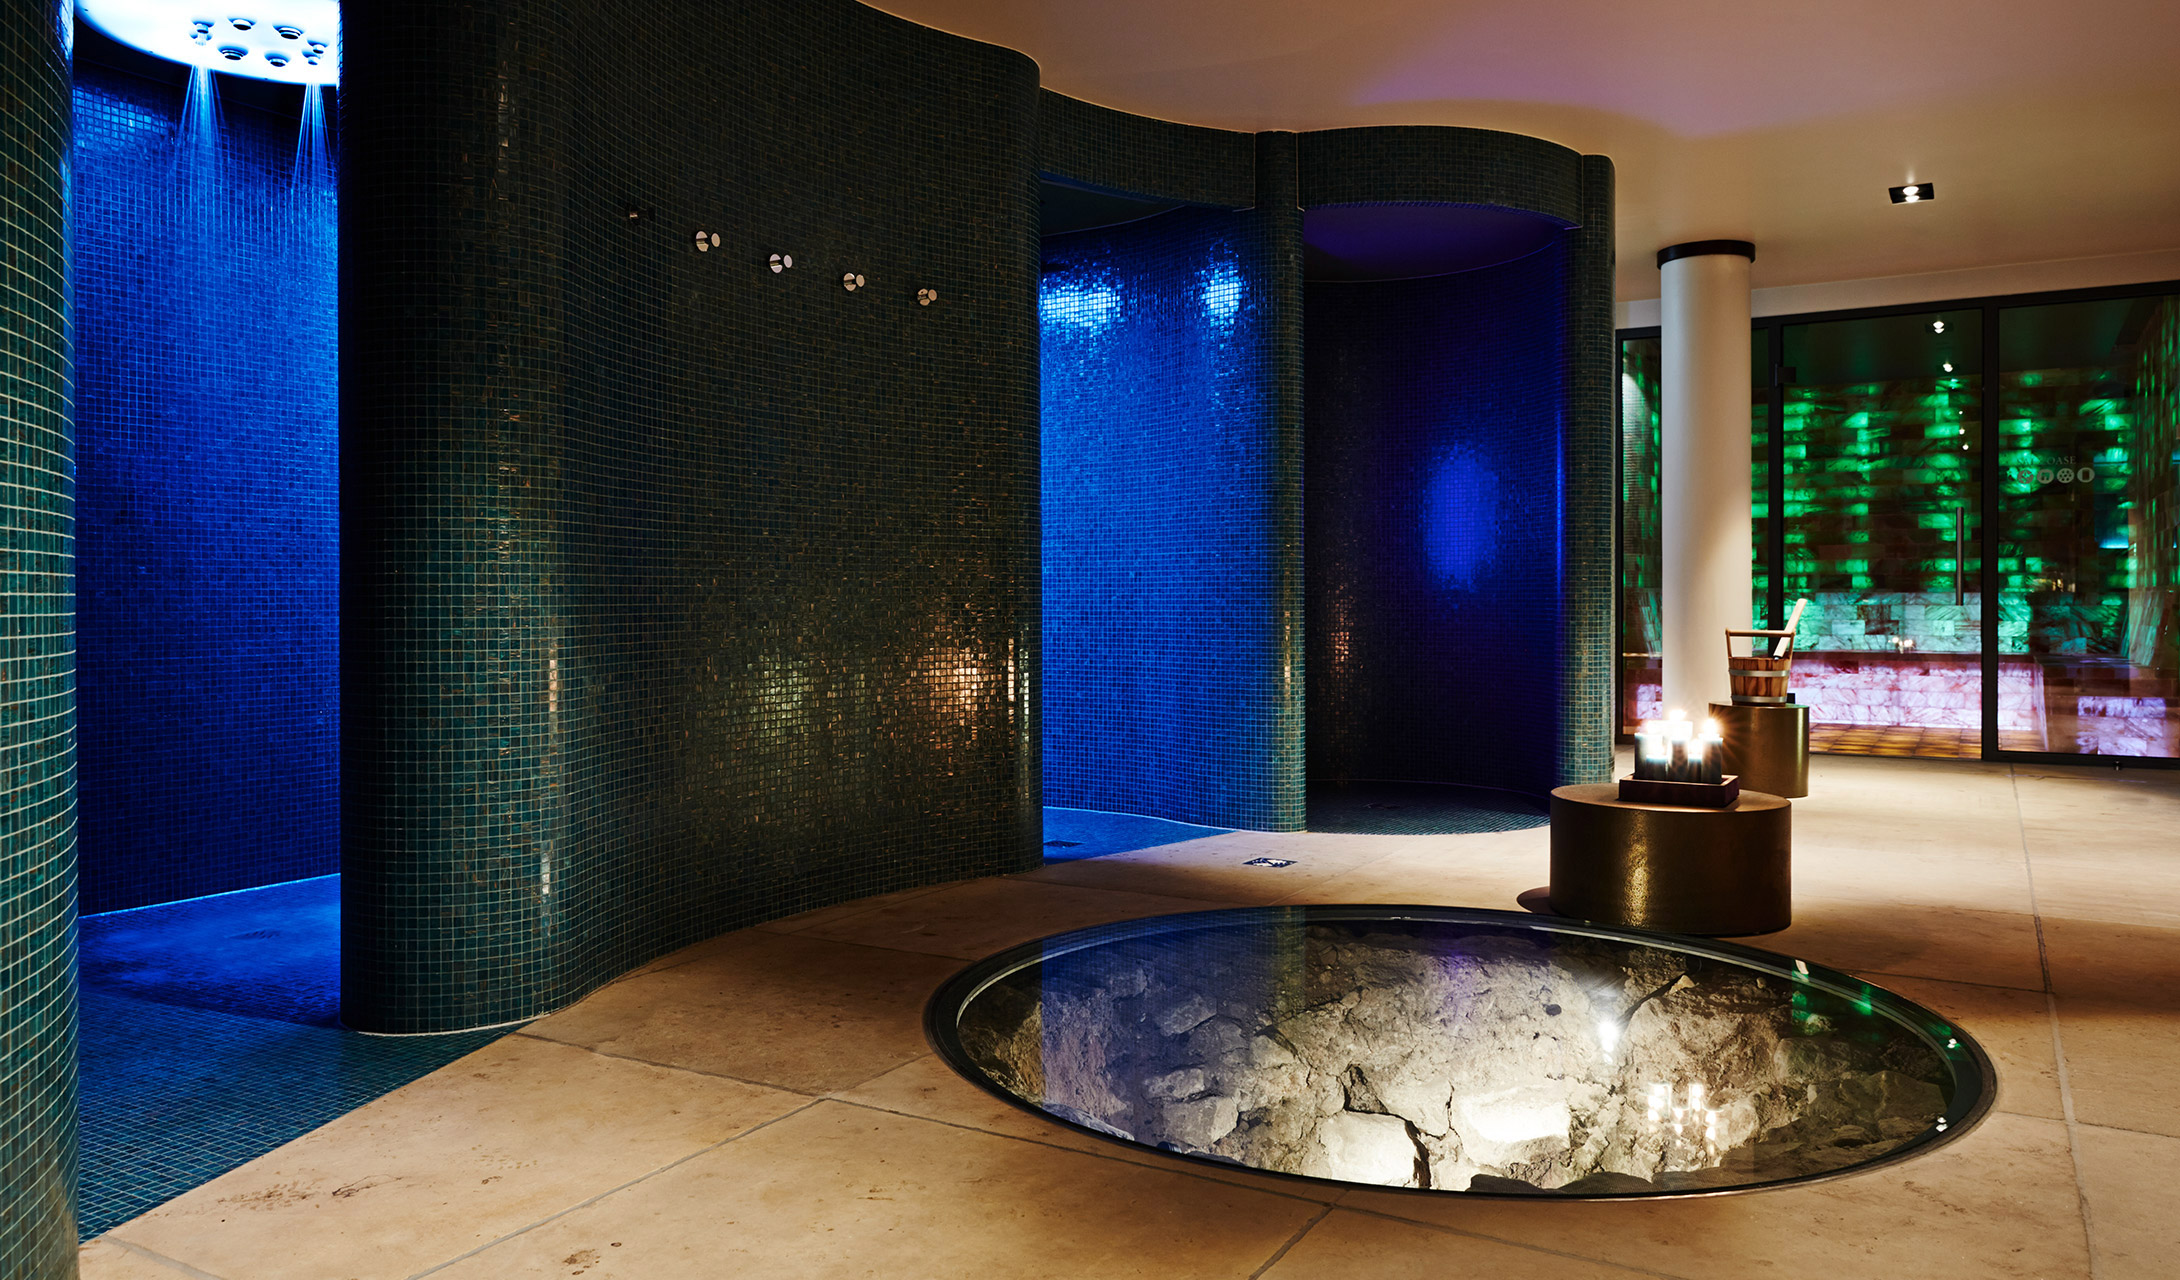 Traditional German Hospitality Blends With Modern Art And Design At Hotel  Zum Löwen, A